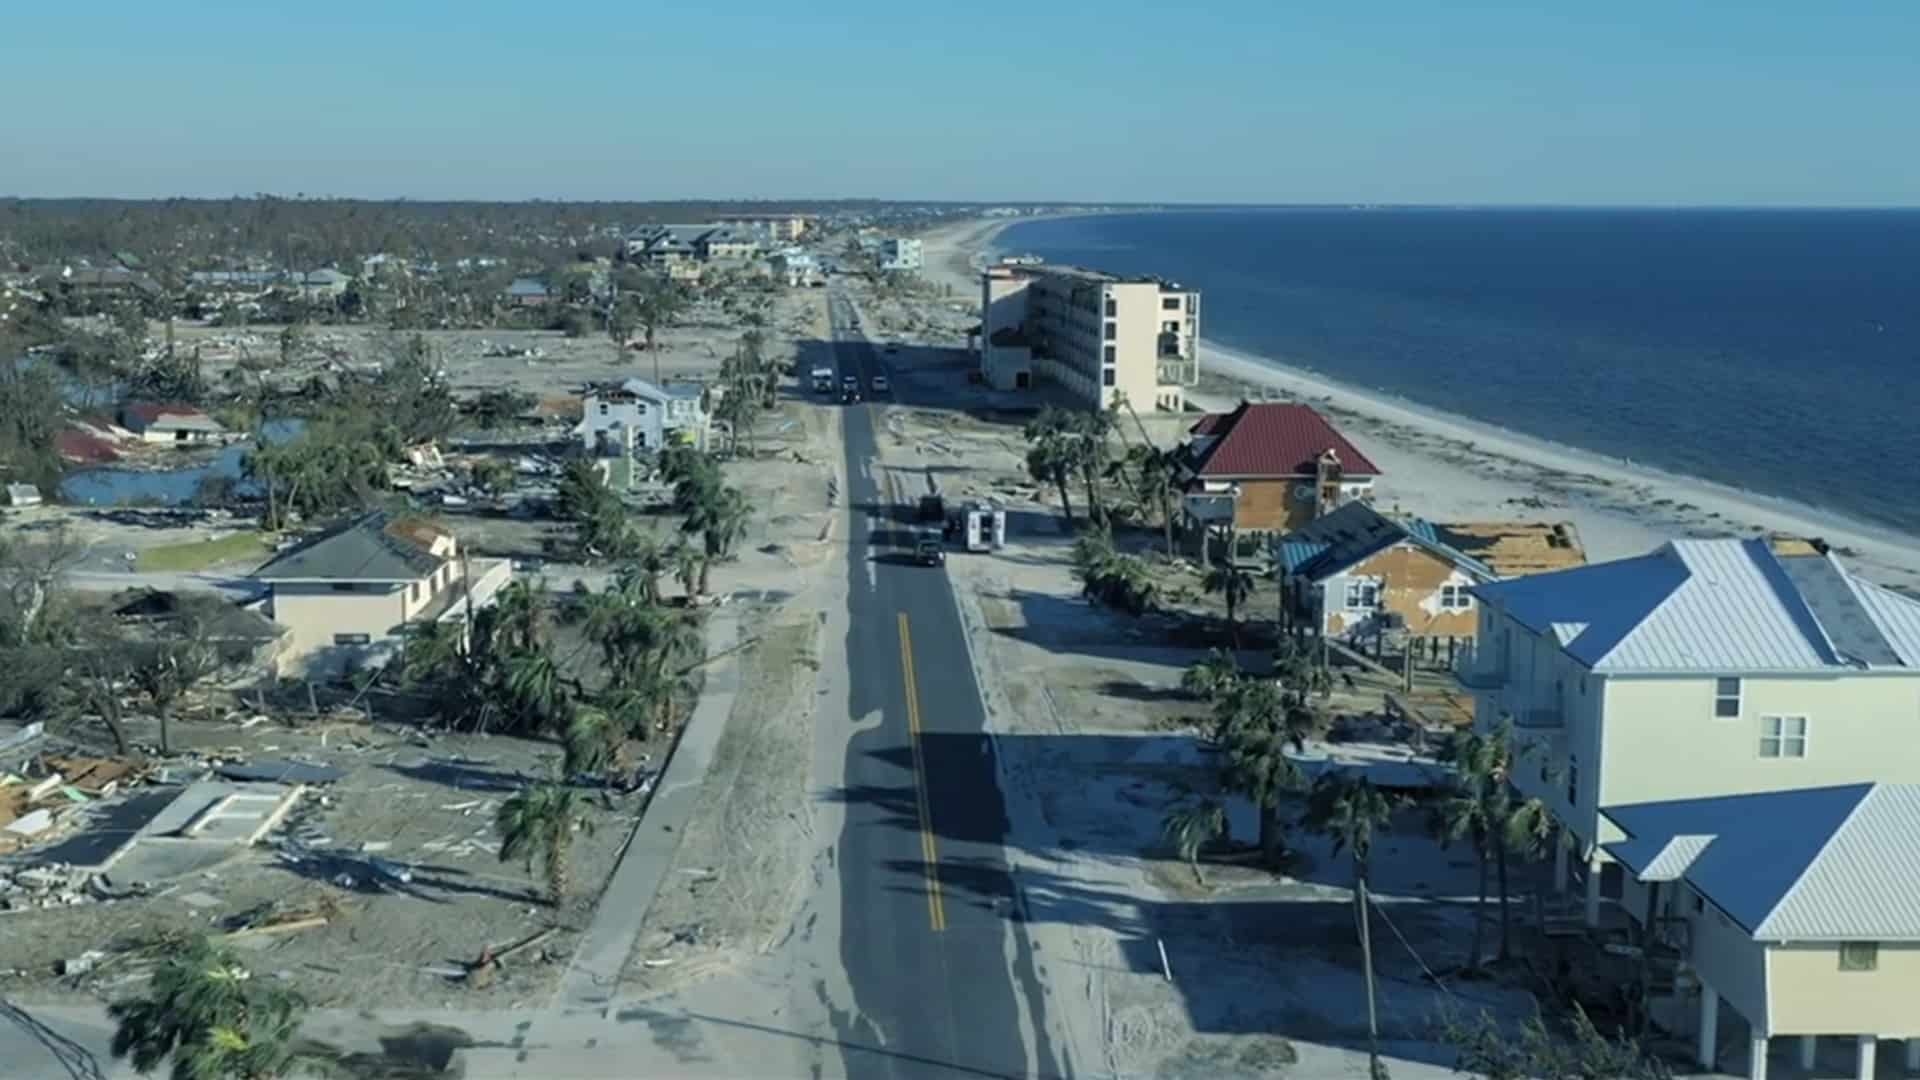 Hurricane Michael Destruction. Please help with the relief.